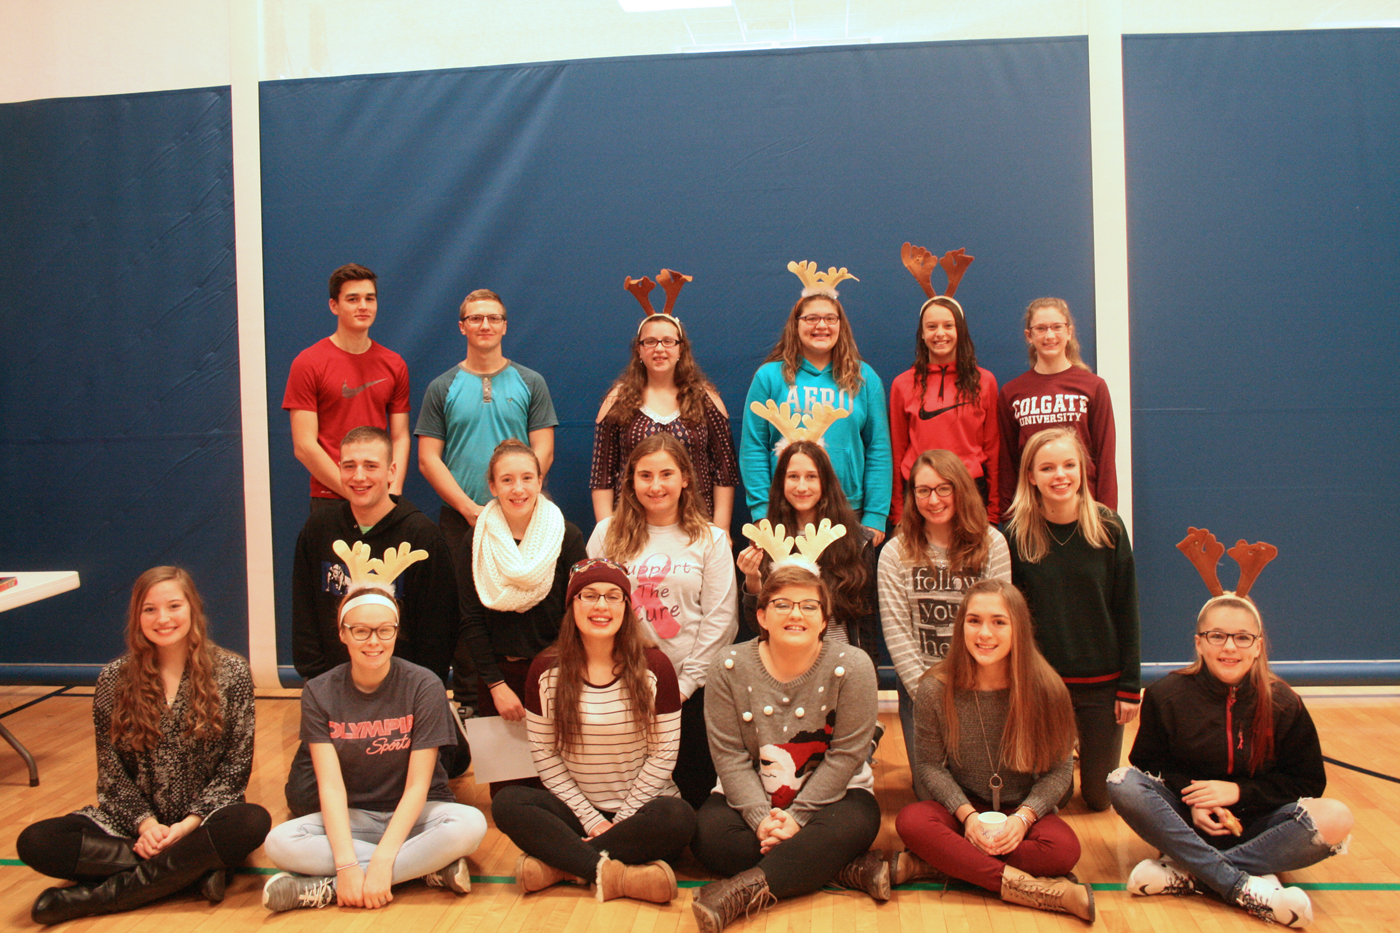 Holley High School students worked tirelessly to bring gifts to 141 children this year. Provided photo